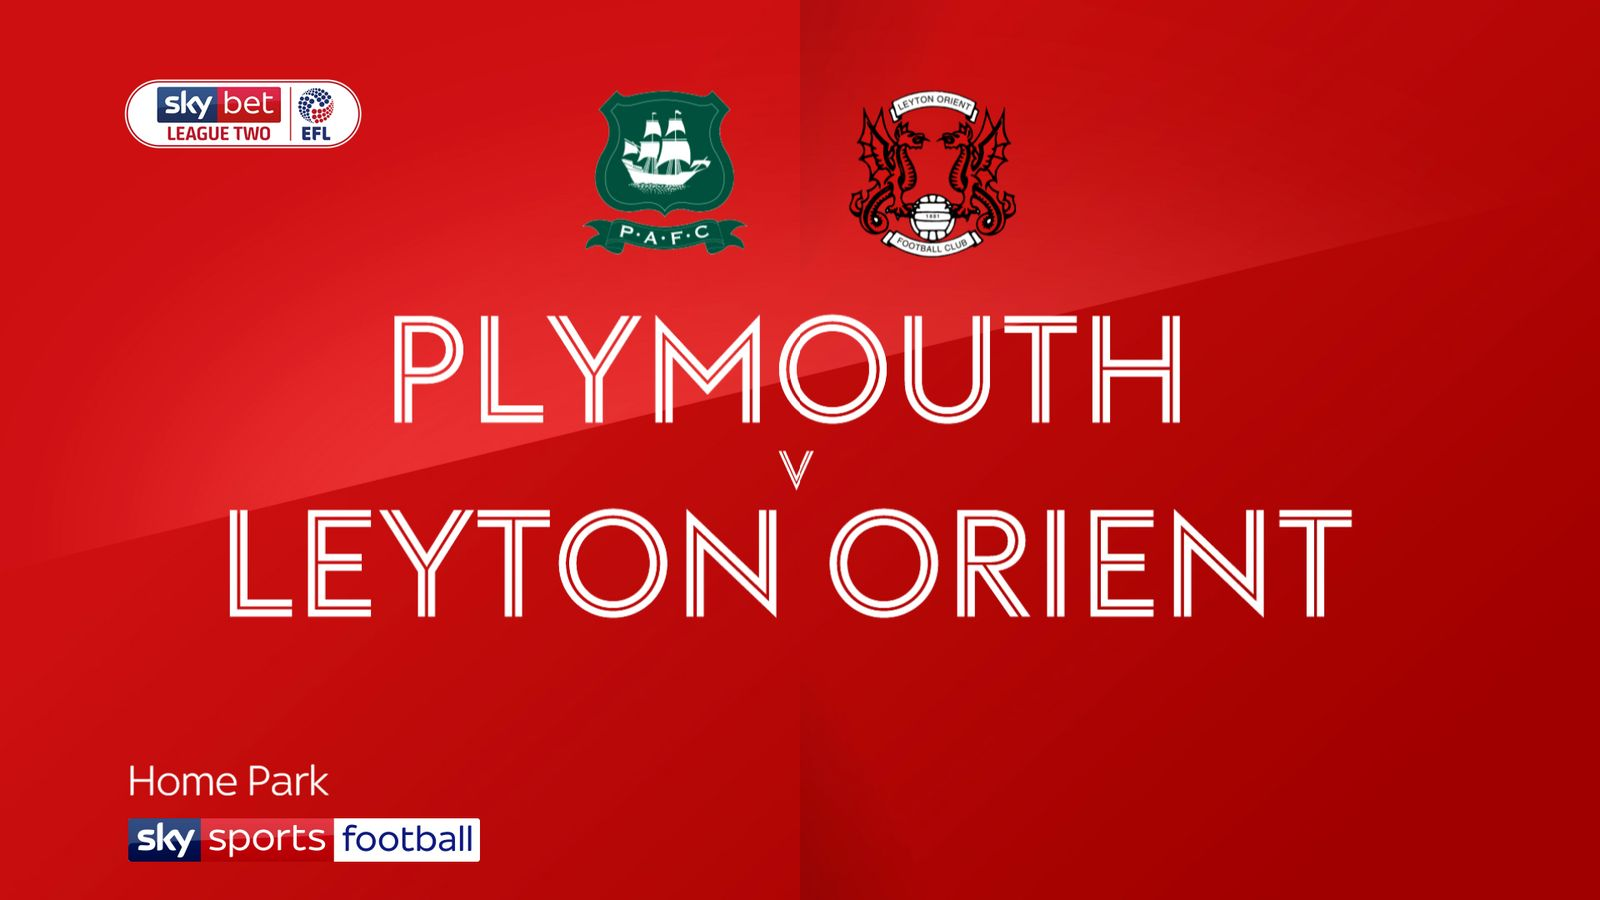 Plymouth 4-0 Leyton Orient: Argyle gear up for Devon derby with big win